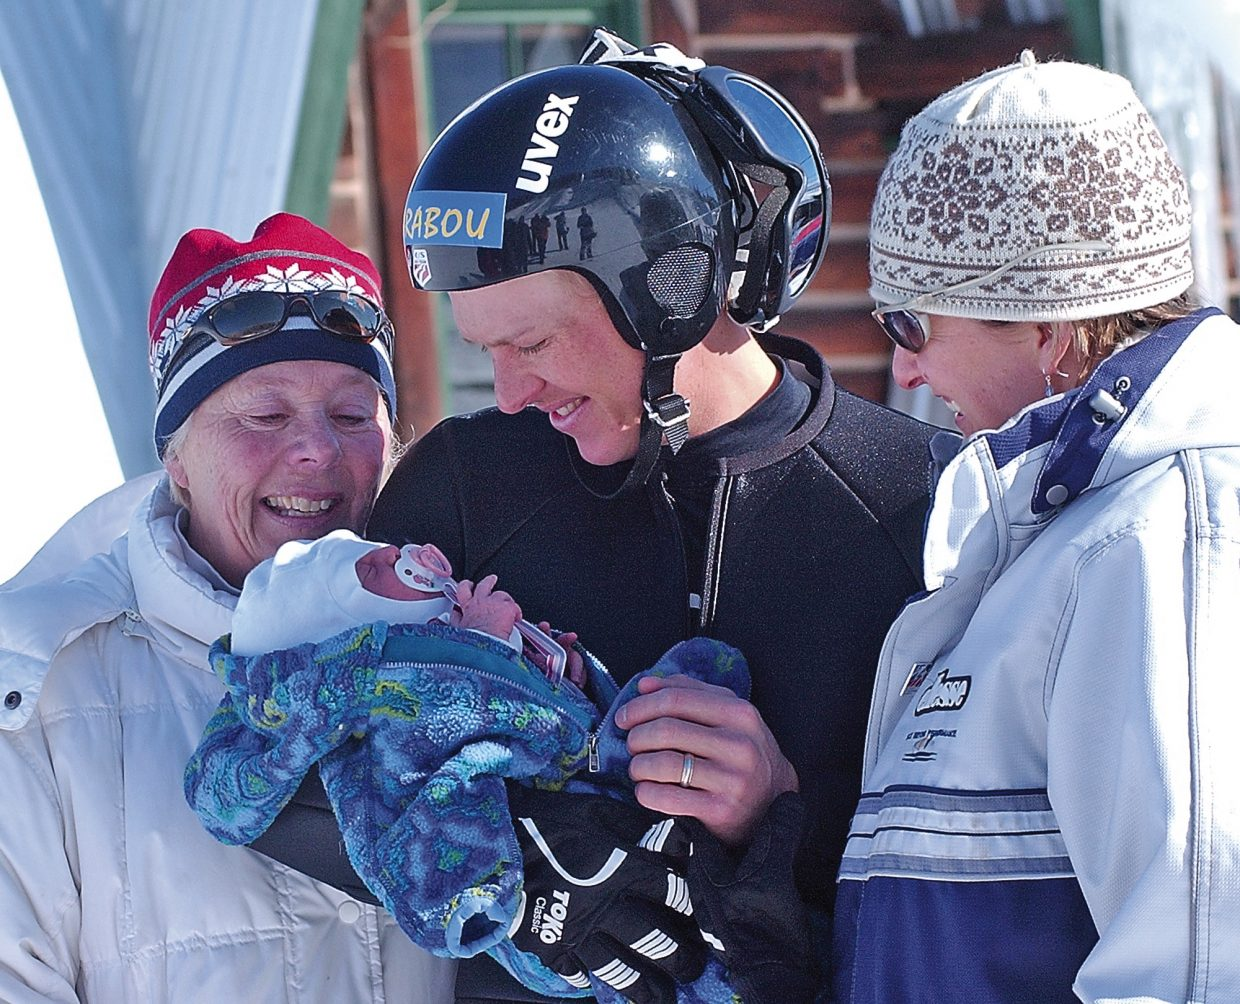 Surrounded by his mom, Jeanne, and wife, Sunny, Todd Lodwick takes a few minutes after the U.S. National normal hill championships at Howeslen Hill to hold newborn daughter, Charley. After years of chasing his World Cup ambitions, it appears that Lodwick plans to start the next chapter of his life in Steamboat.